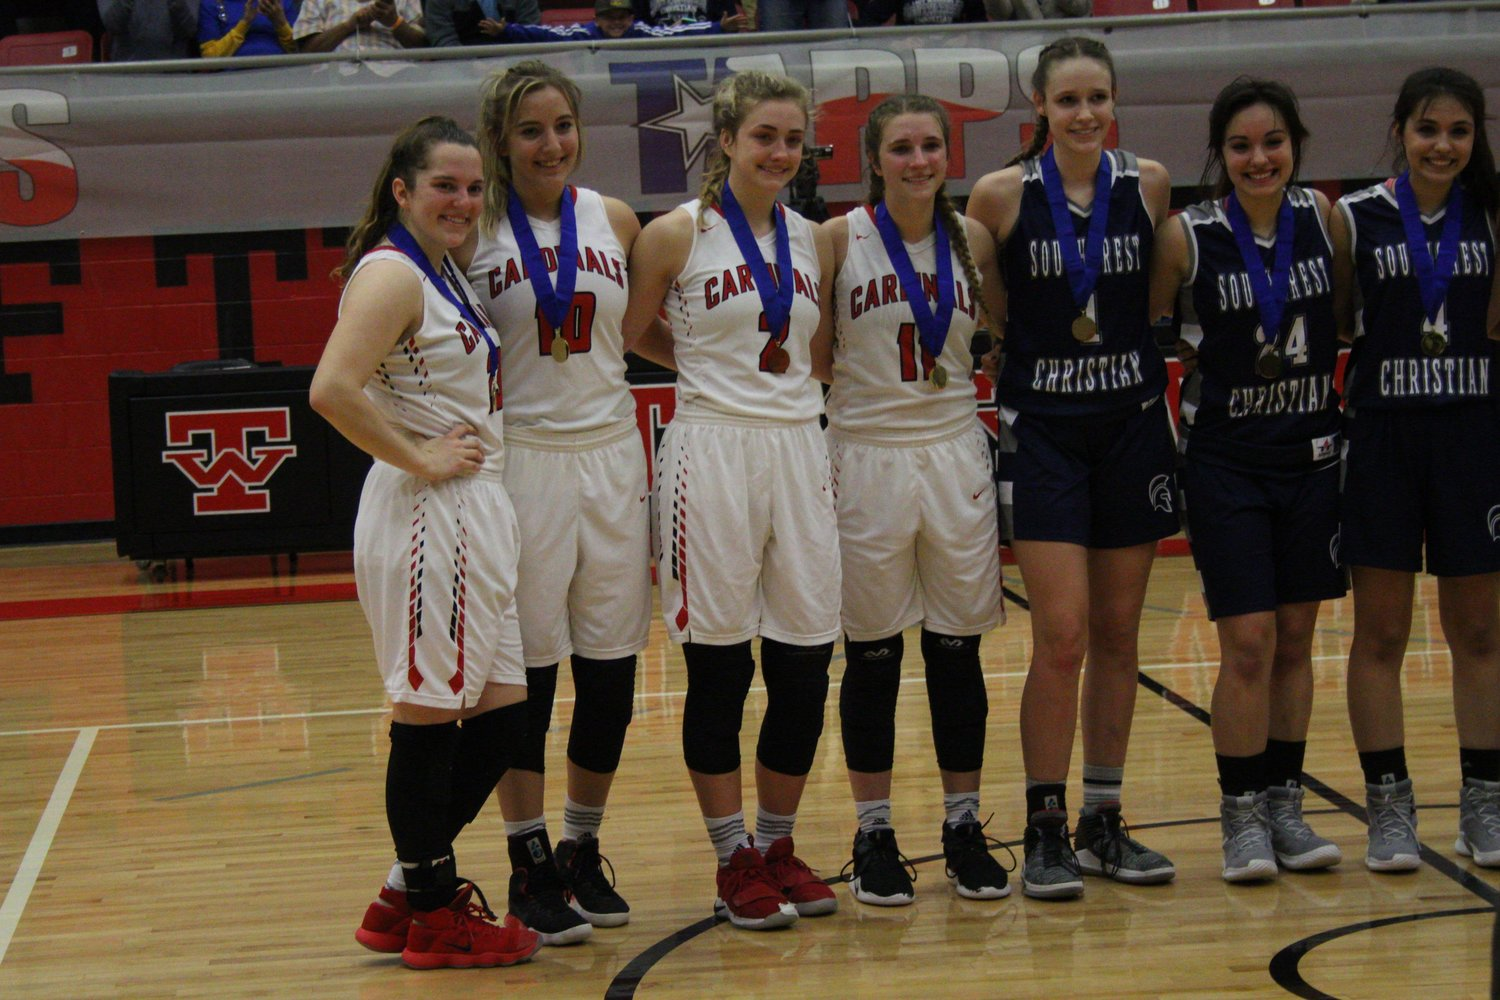 Named to the TAPPS 2A state tournament team were seniors Grace Irvin, Delynn Pesek, Gracey Novosad and Christine Wagner.